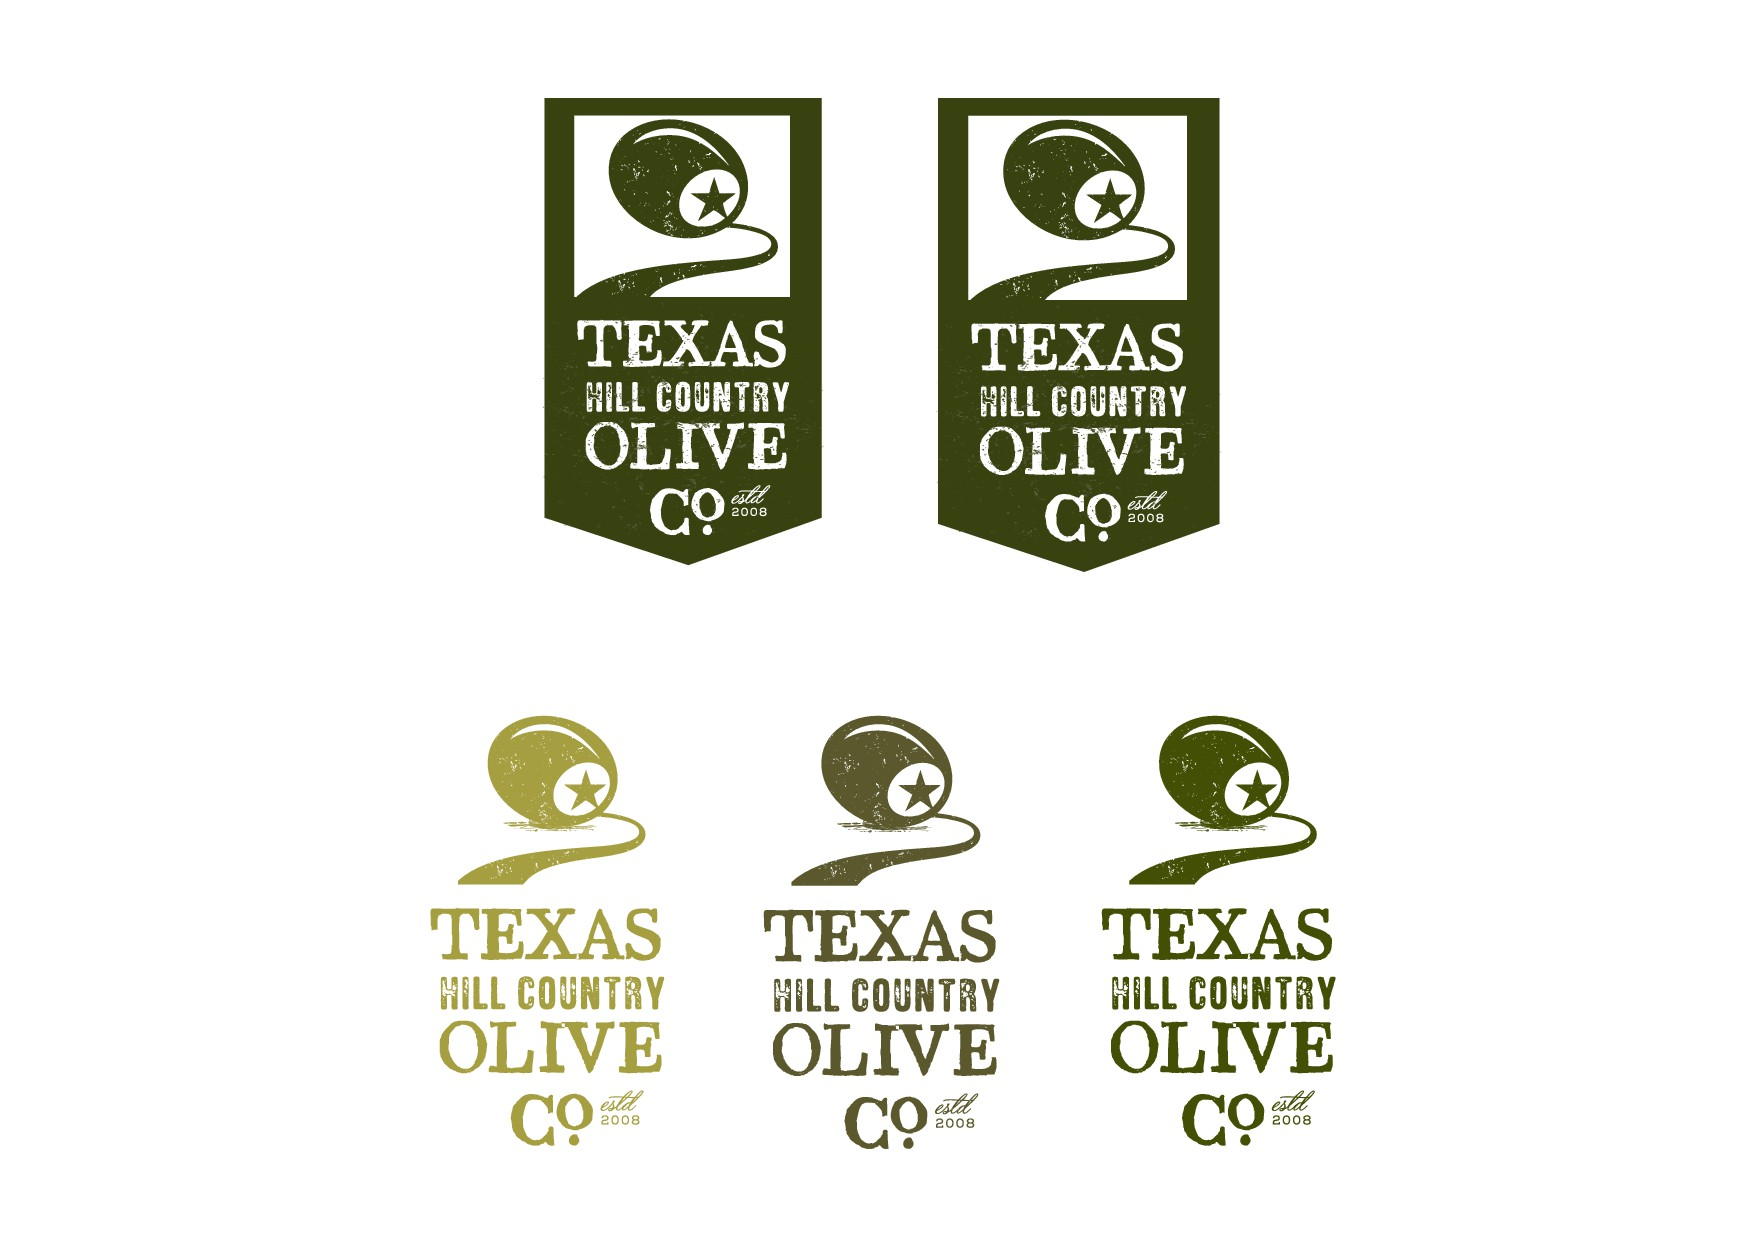 Update and refresh an existing logo for a top Texas olive oil producer.